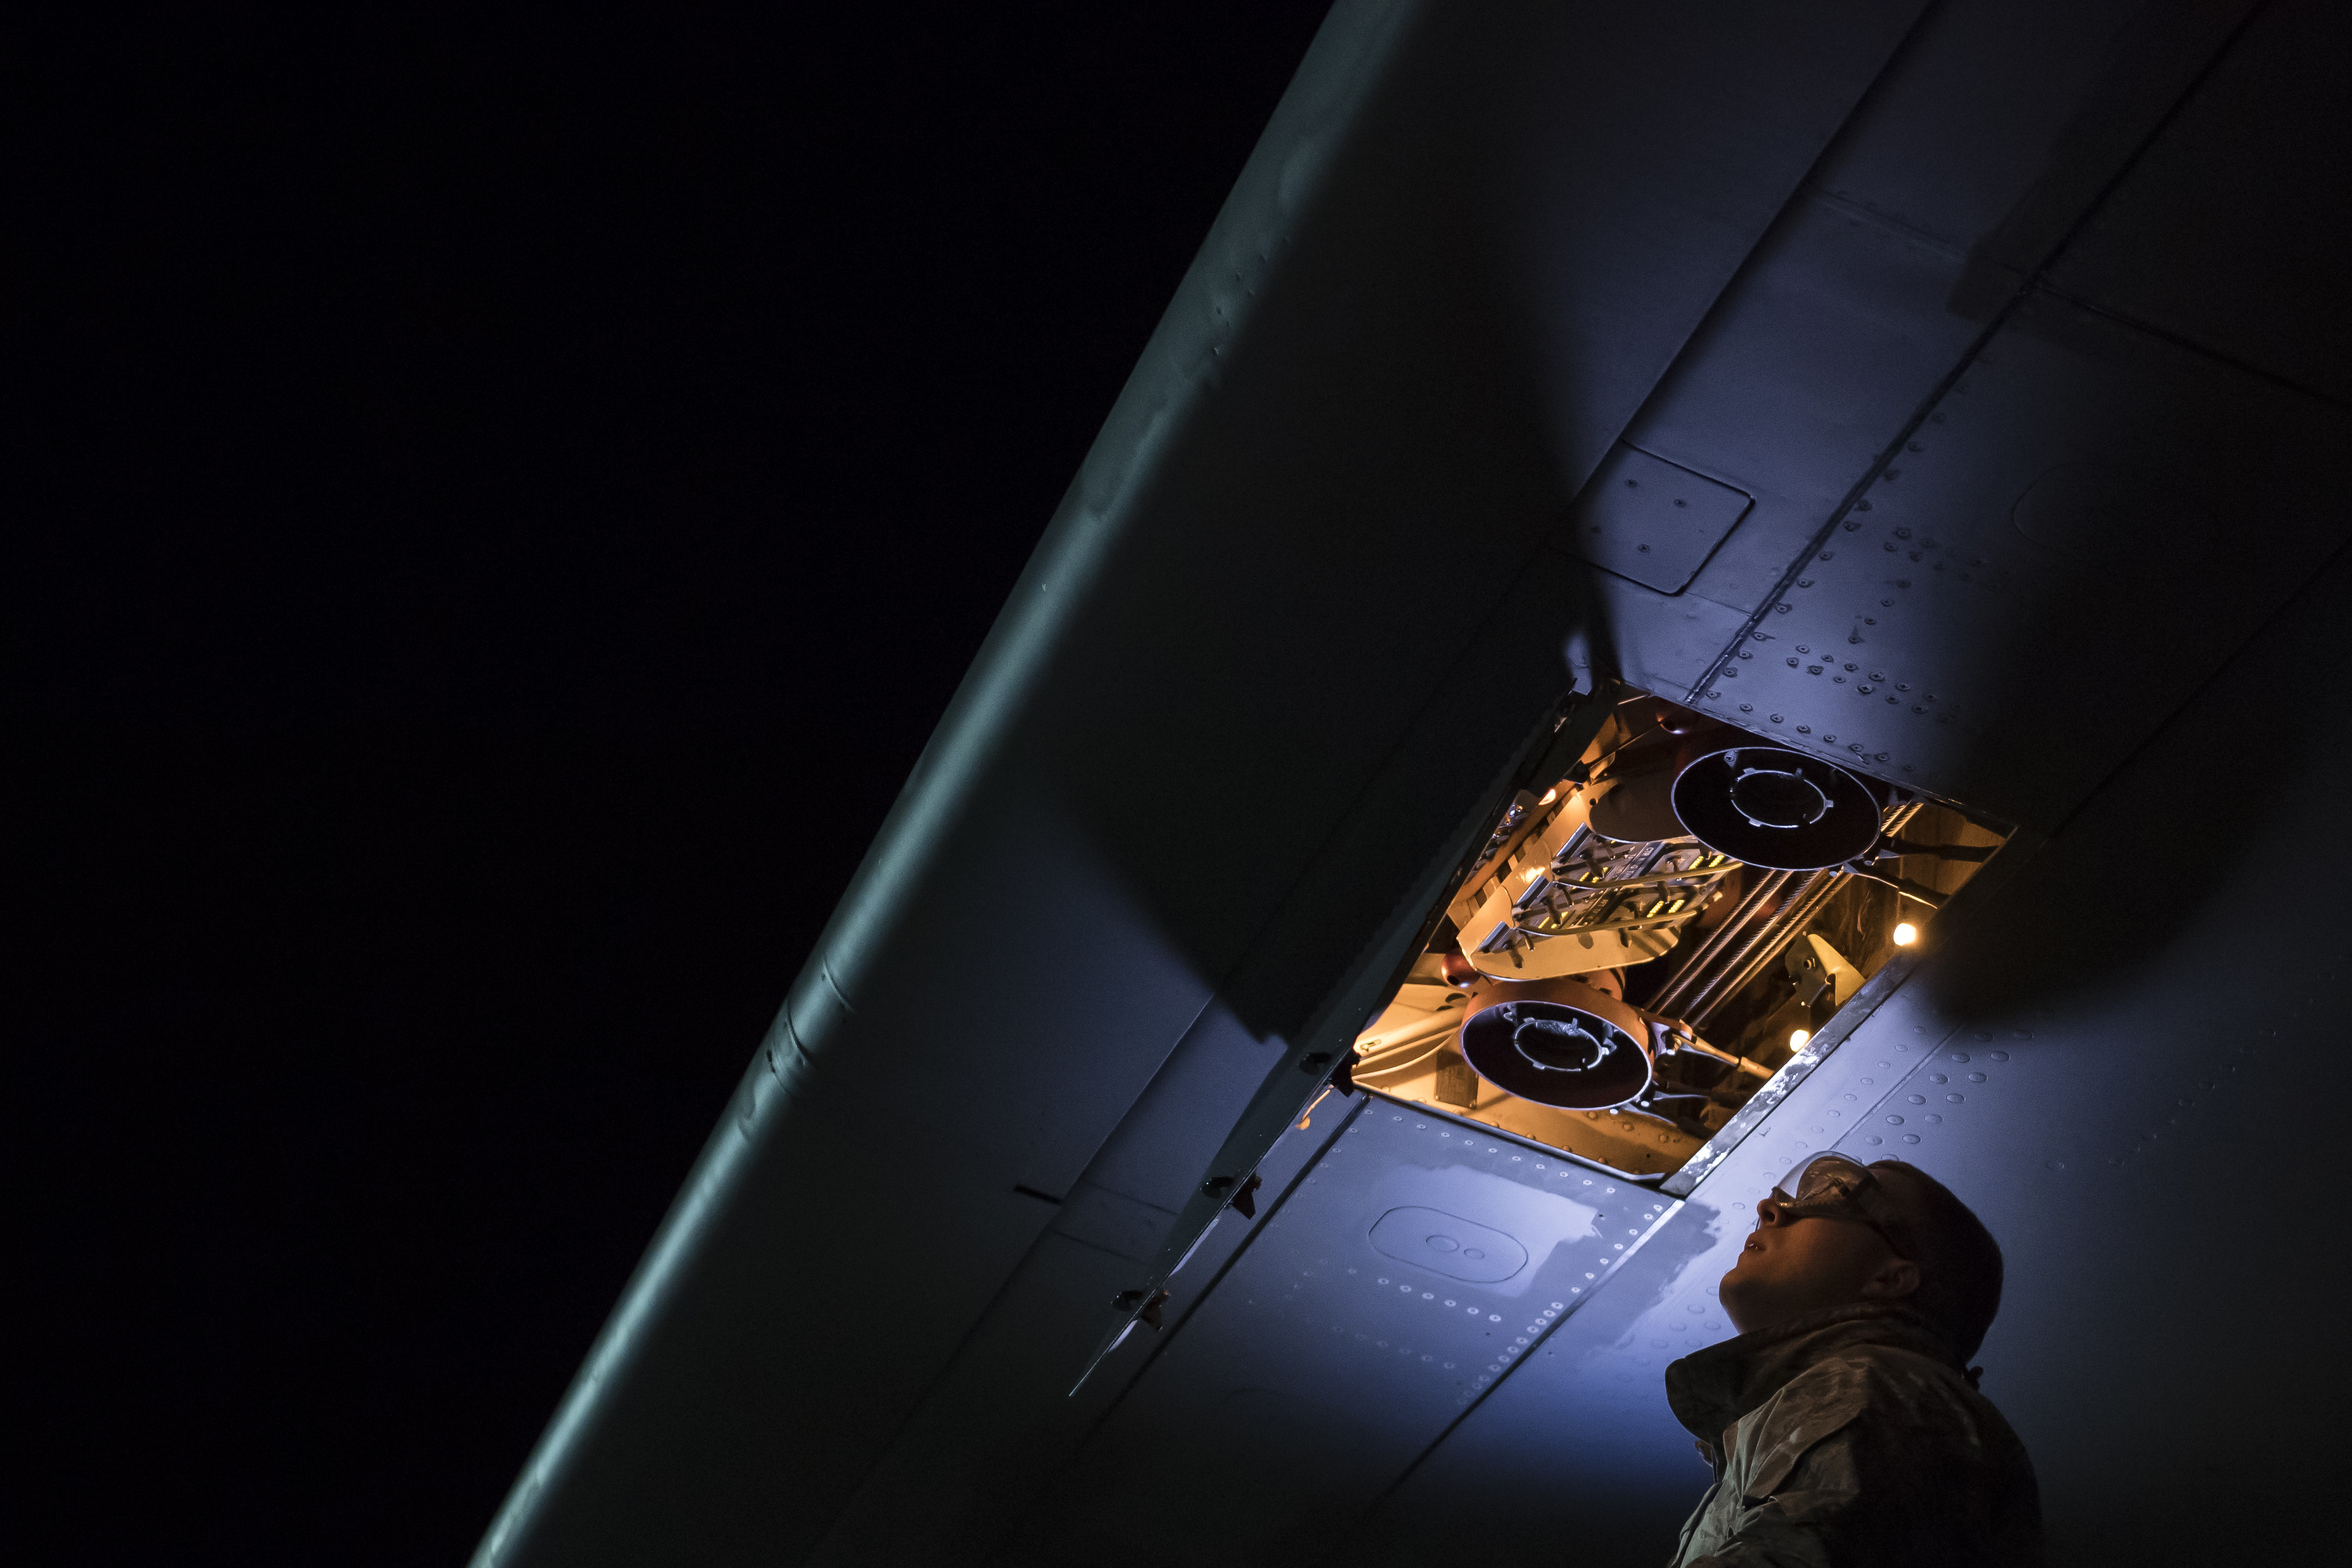 Senior Airman Tyler Sutlovich, 911th Airlift Wing, 911th Maintenance Squadron, Pittsburgh, Pa. does a quick inspection before refueling a KC-10 Extender May 15, 2019. Sutlovich is taking part in a test run of an all-systems maintenance program that would increase efficiency on the filghtline. (U.S. Air Force photo by Christian DeLuca)